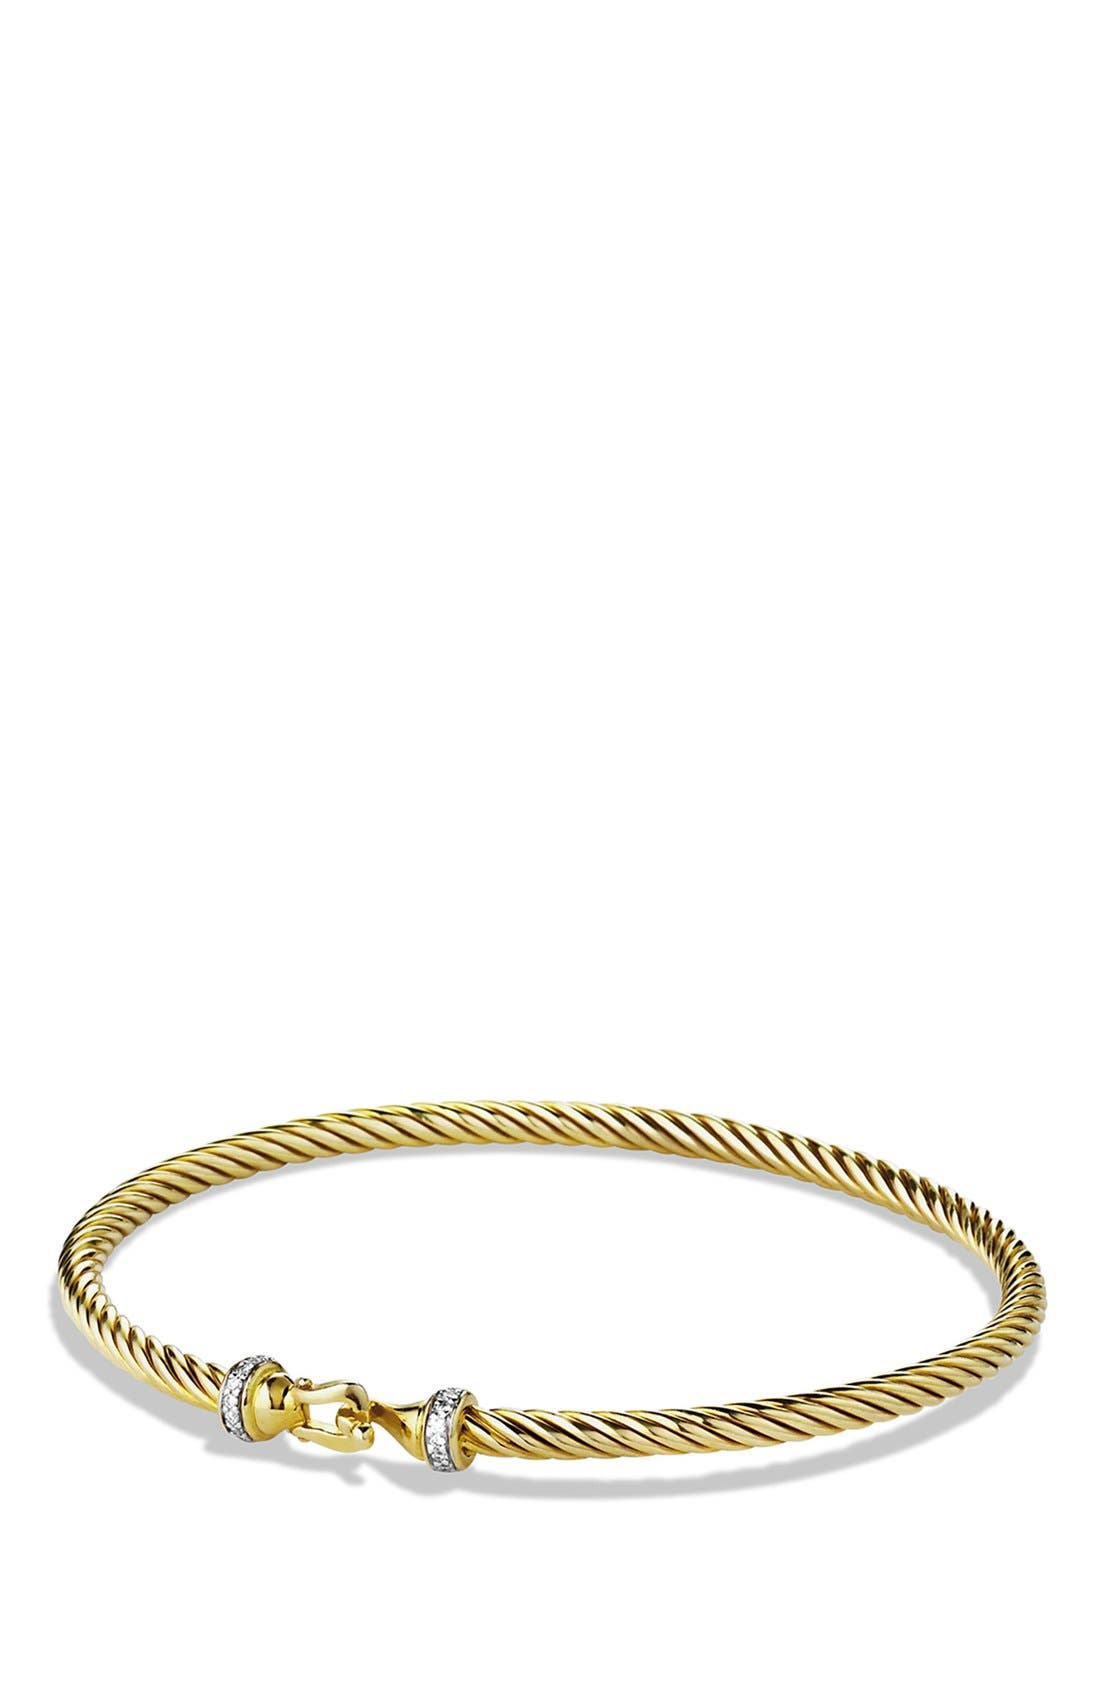 David Yurman Cable Collectibles Buckle Bracelet with Diamonds in 18K Gold, 3mm